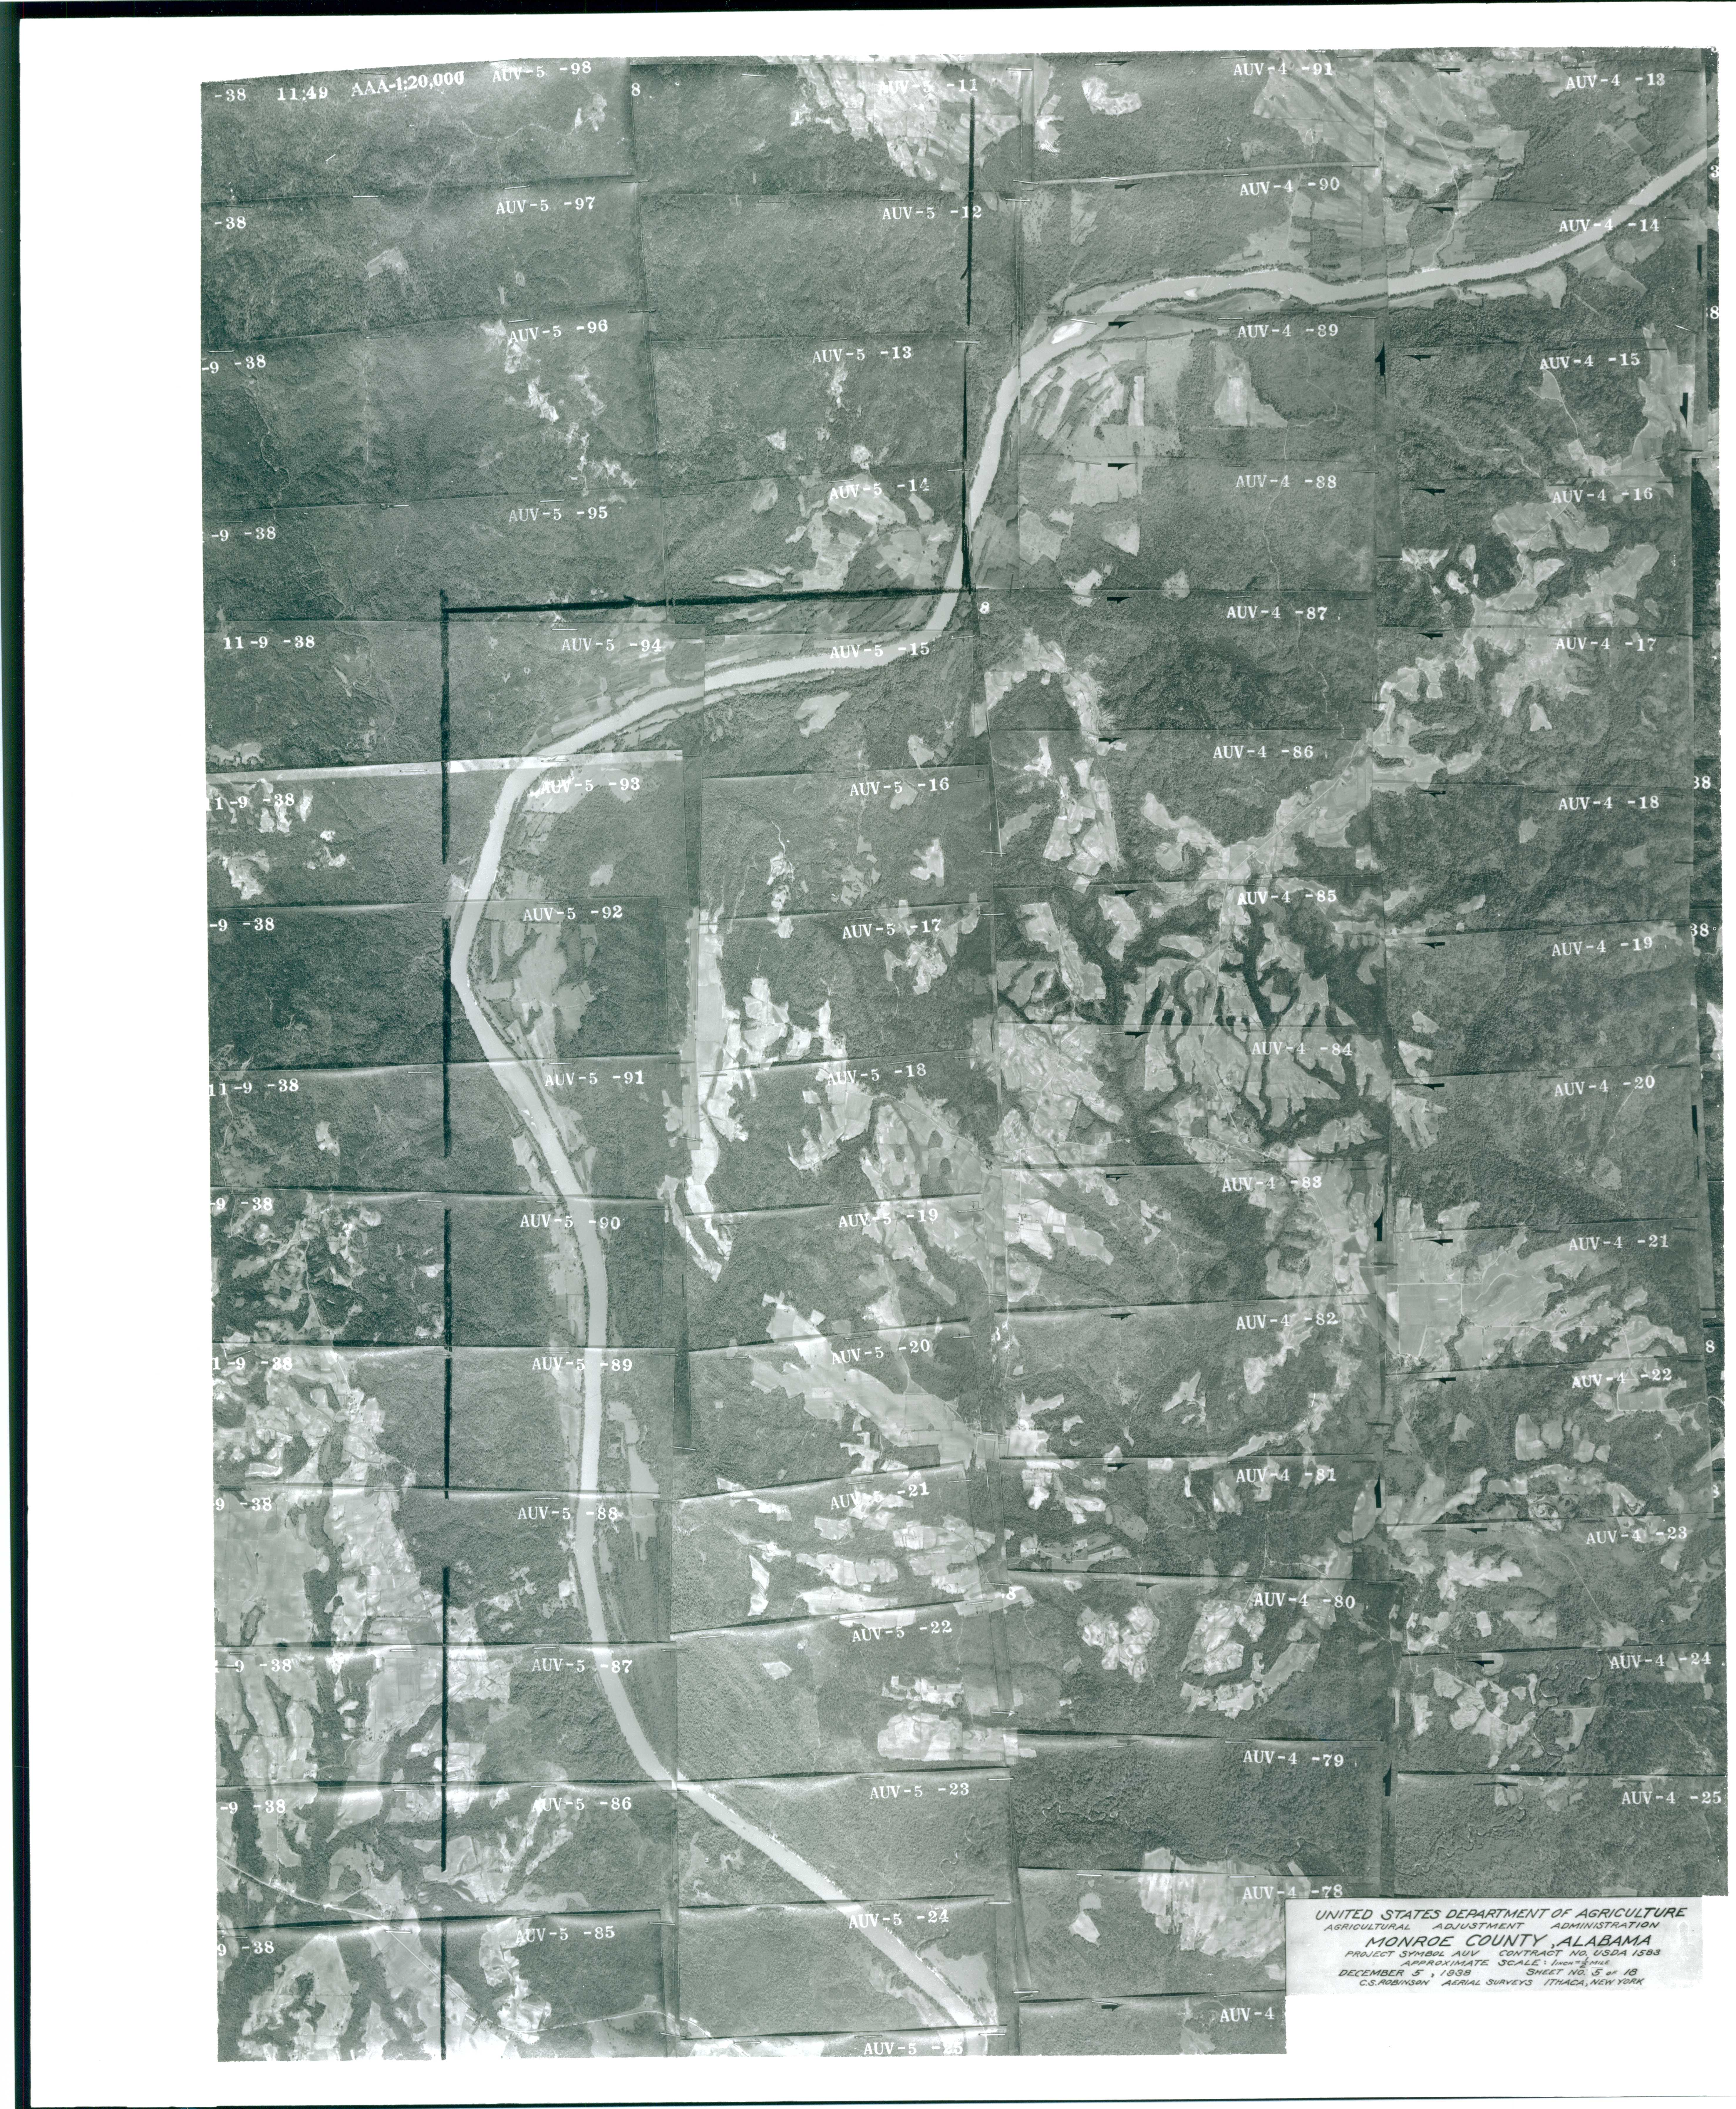 Aerial Photography Index for Monroe County, Alabama, Sheet 5